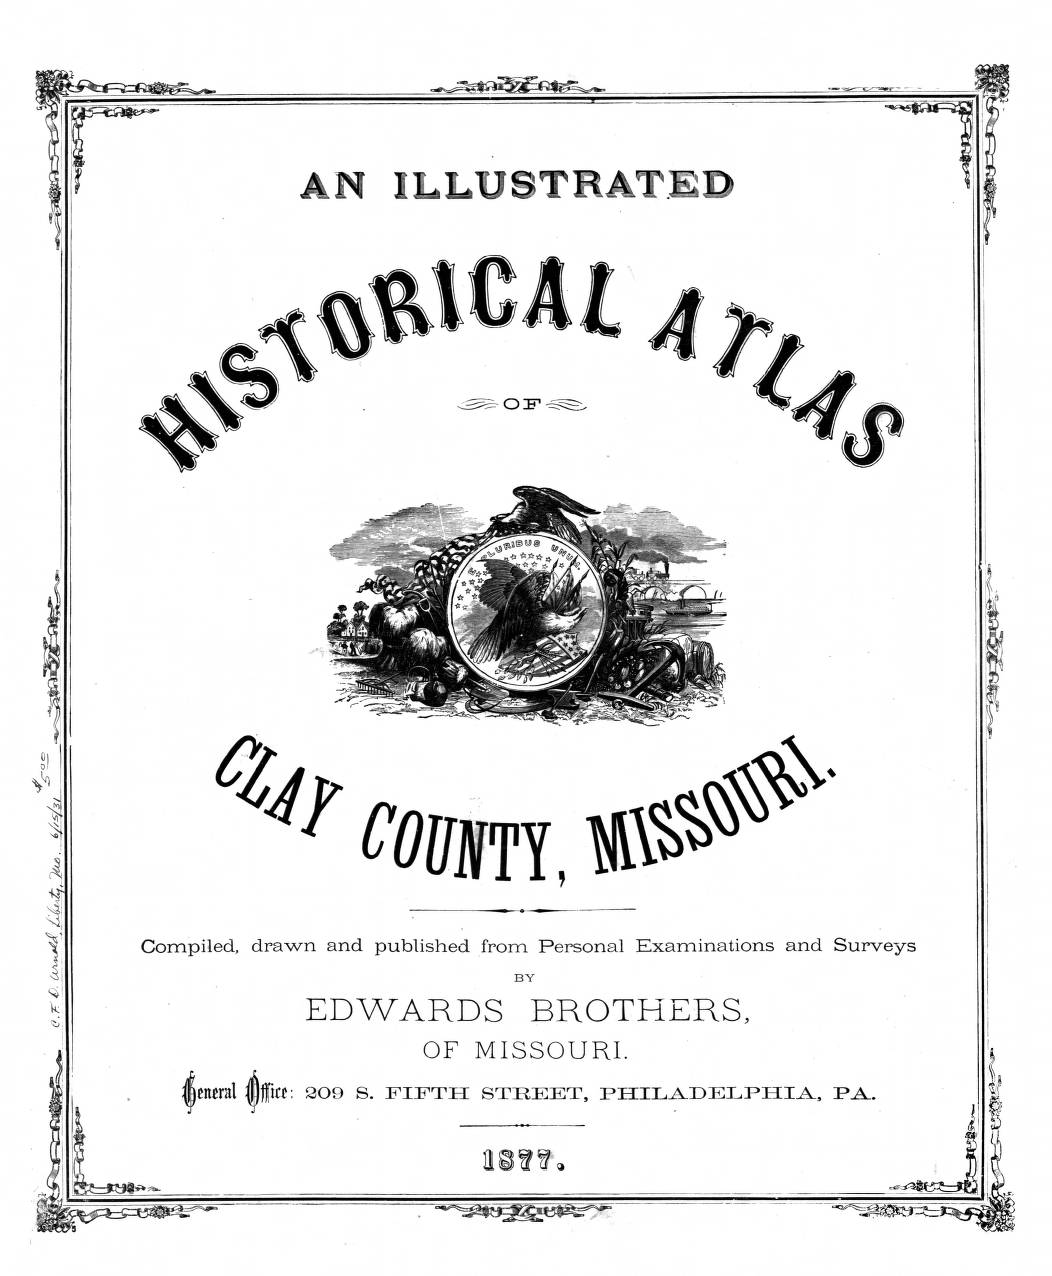 An illustrated historical atlas of Clay County, Missouri ... on baker county alabama map, city of jacksonville alabama map, dekalb county tennessee map, franklin co alabama map, dekalb county alabama zip code map, calhoun county alabama map, clay co ut, coosa county alabama map, tallapoosa county al map, lauderdale county alabama map, new york state school district map, alabama county road map, randolph county alabama map, liberty alabama map, birmingham alabama district map, cleburne county alabama map, pollard alabama map, limestone county alabama map, cheaha mountain alabama map, shelby county alabama map,